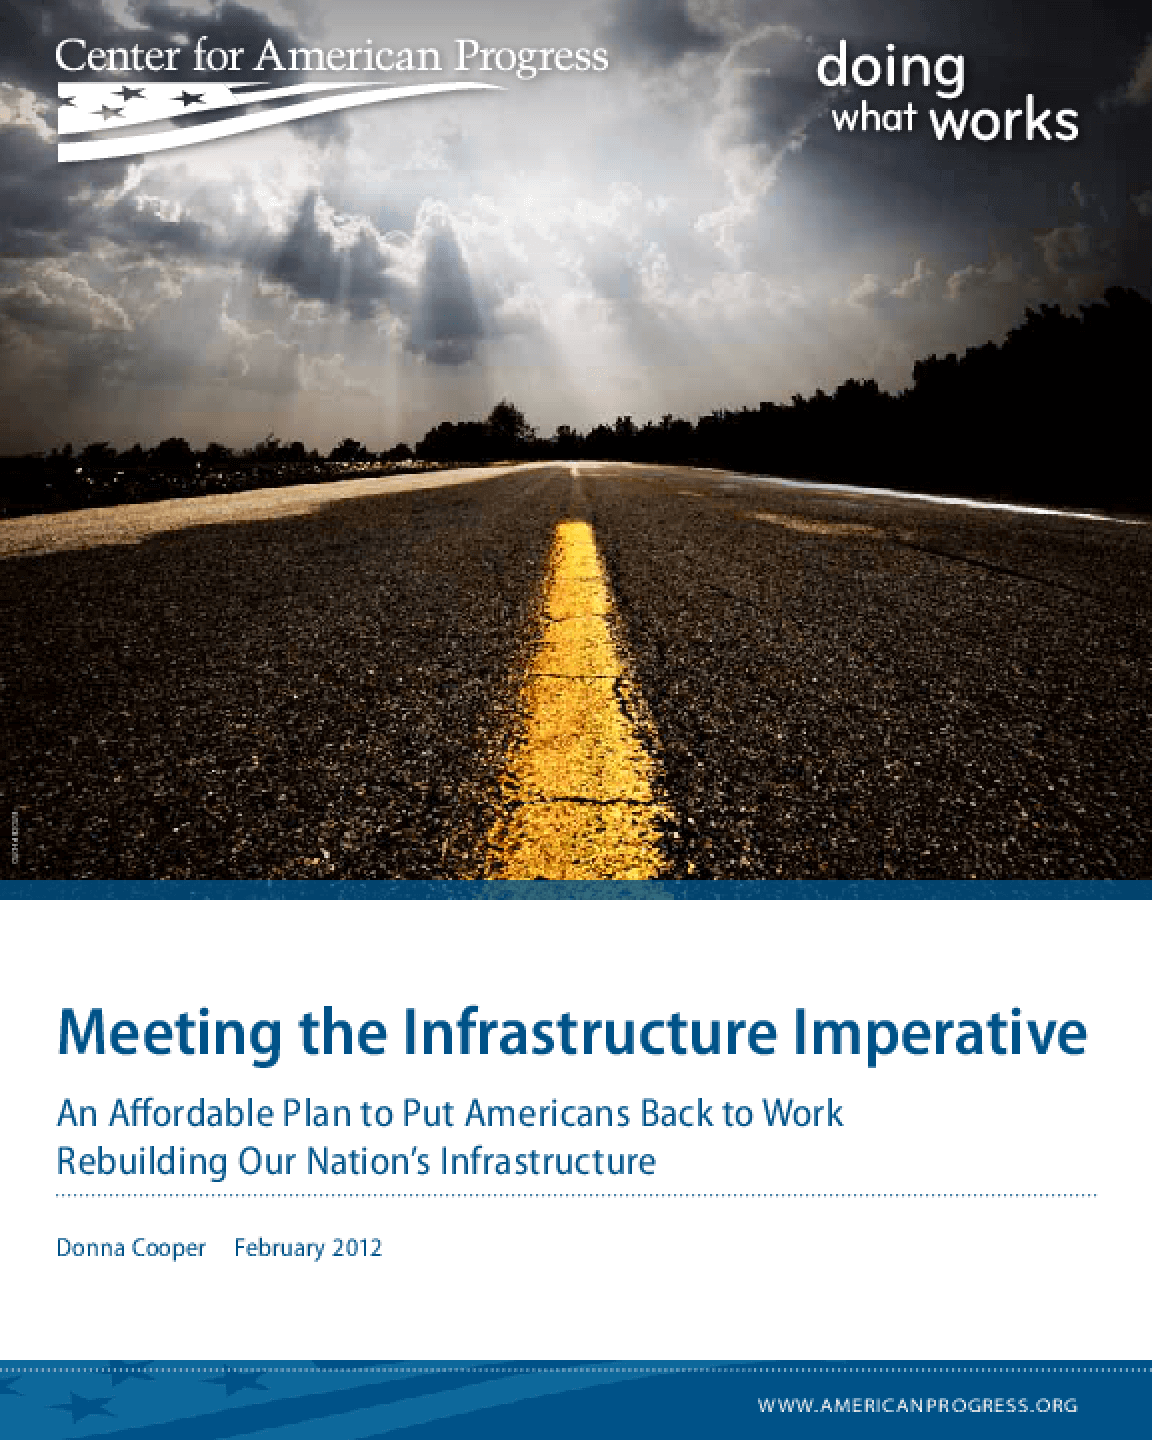 Meeting the Infrastructure Imperative: An Affordable Plan to Put Americans Back to Work